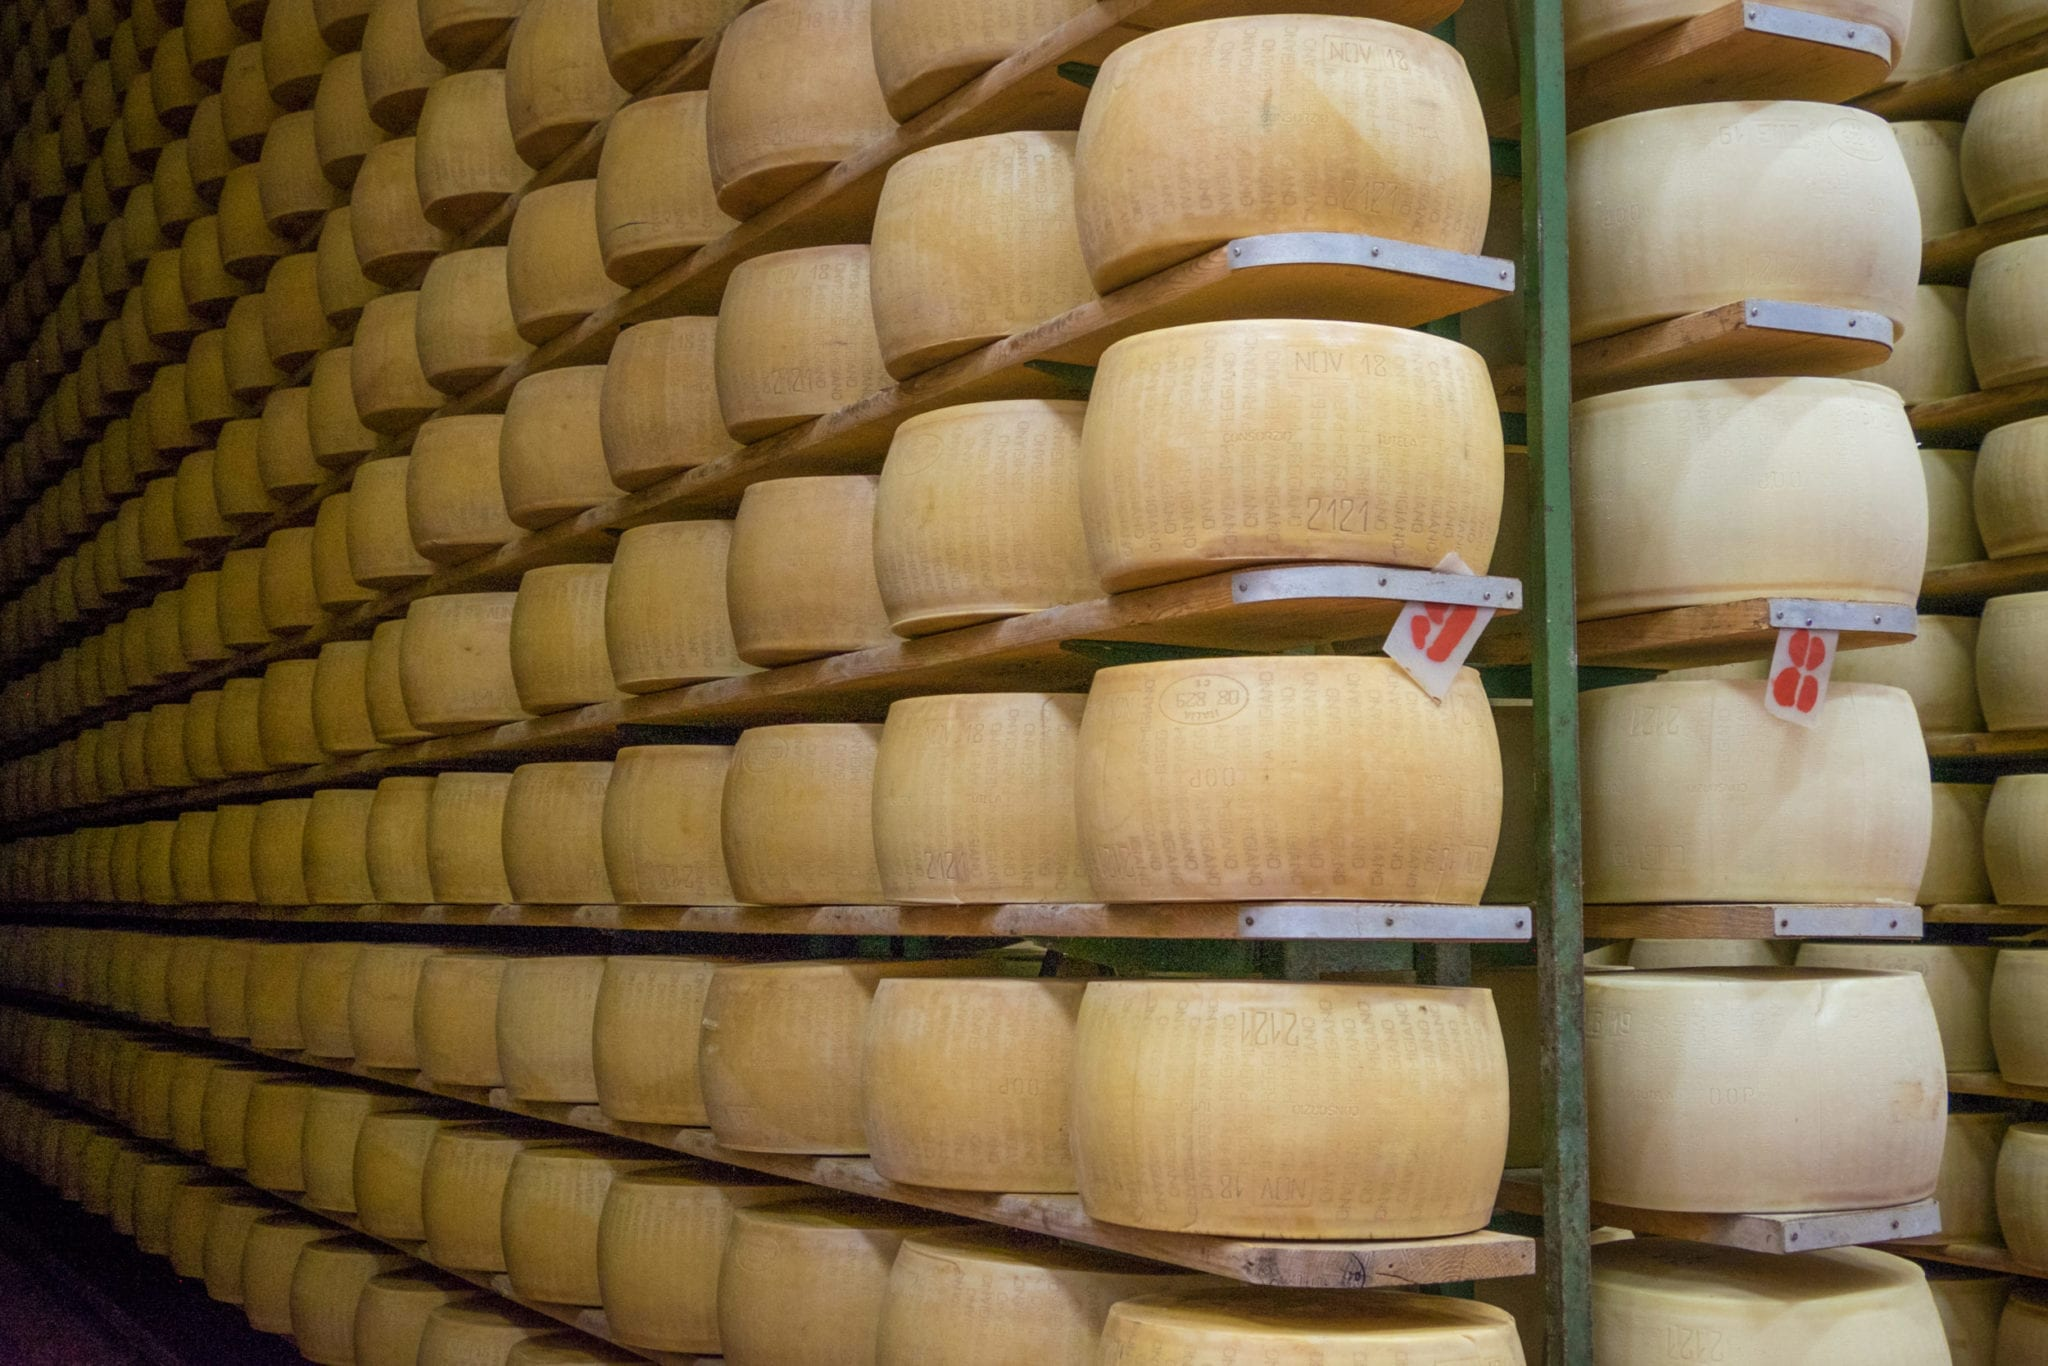 Rows and stacks of Parmigiano Reggiano wheels on shelves.